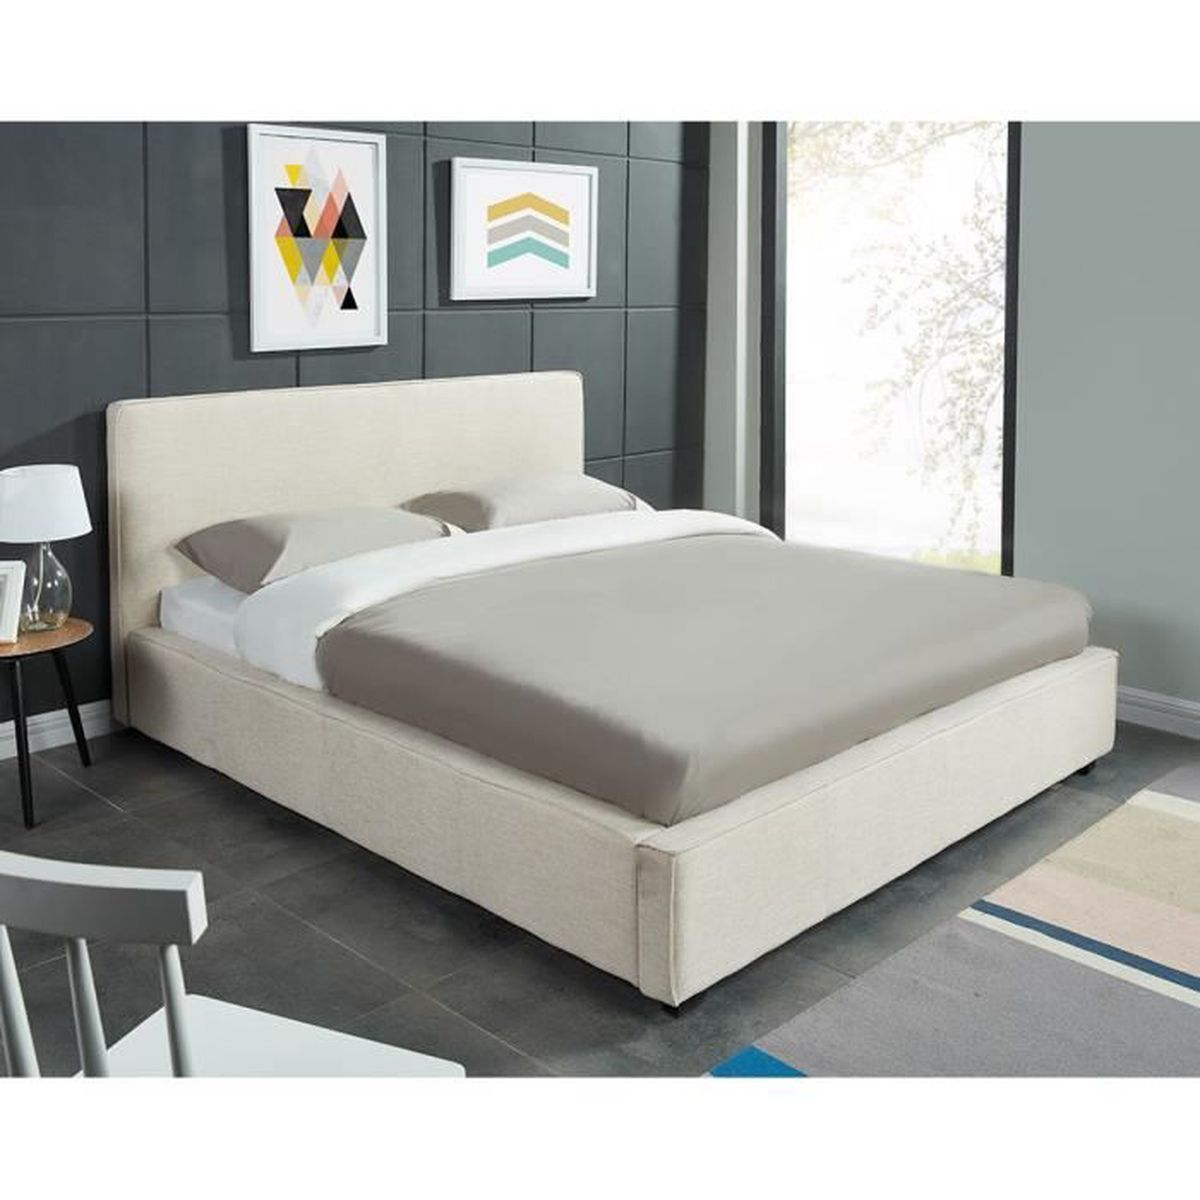 cleveland lit adulte 140x190 cm sommier blanc achat. Black Bedroom Furniture Sets. Home Design Ideas